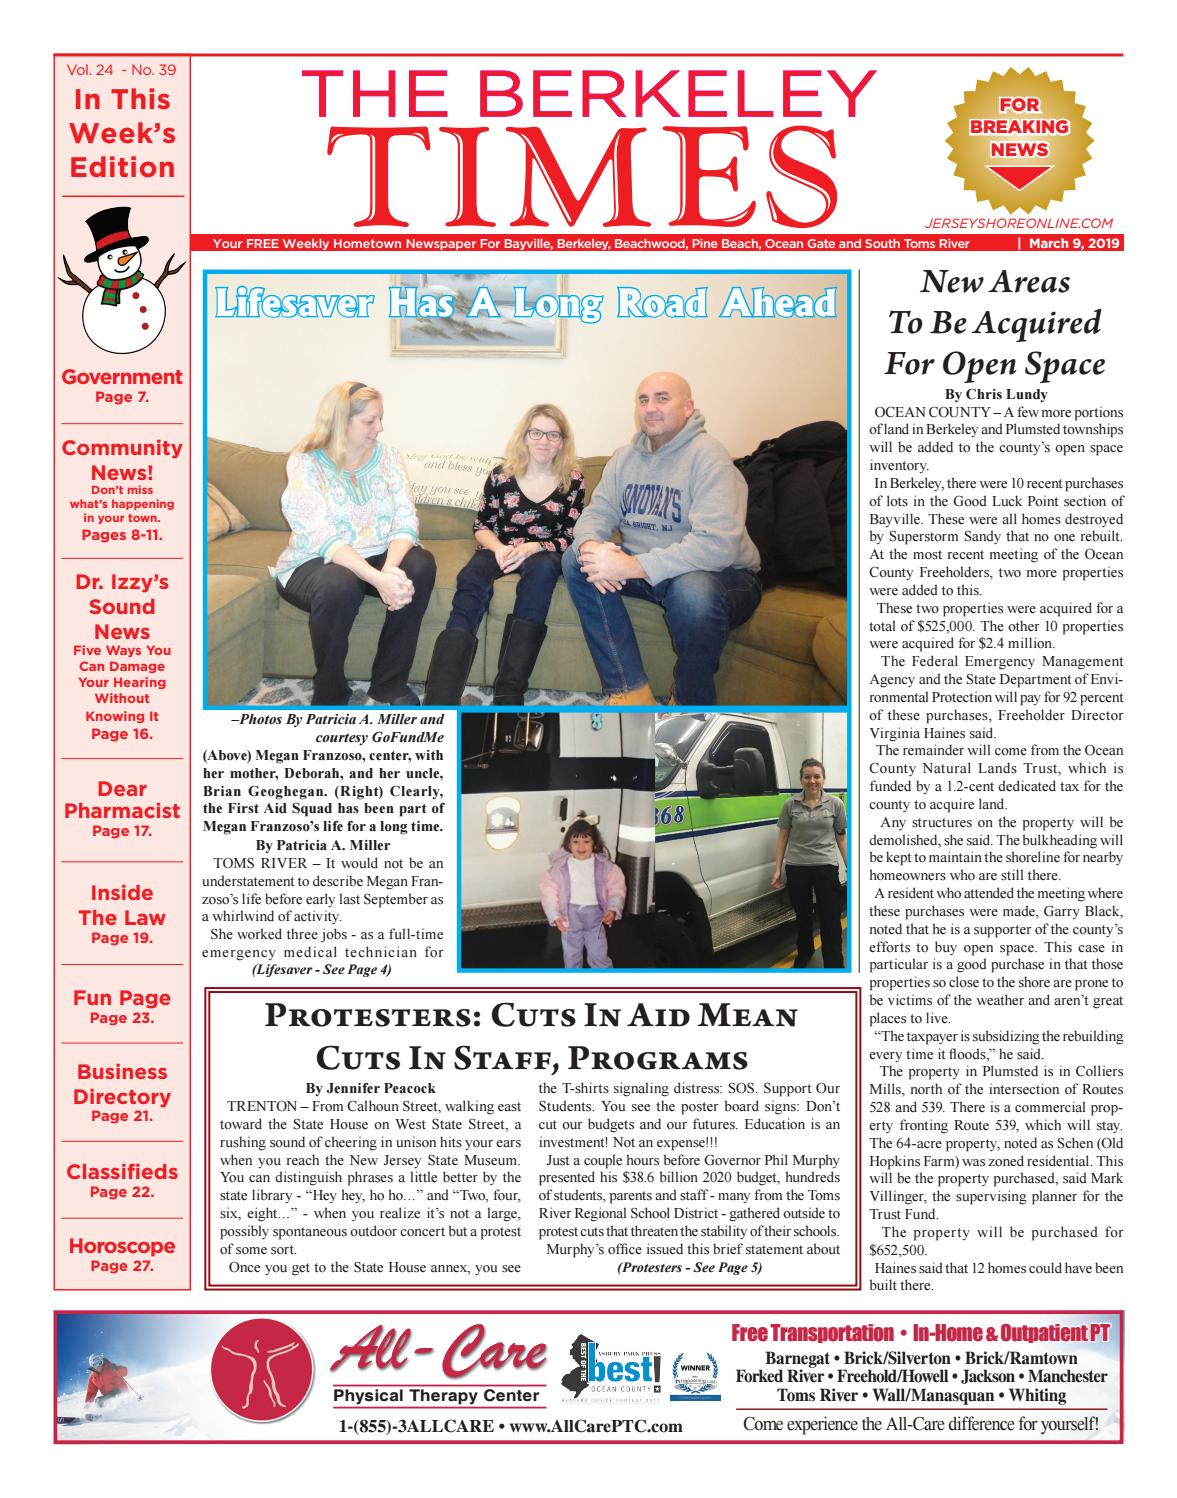 2019-03-09 - The Berkeley Times by Micromedia Publications